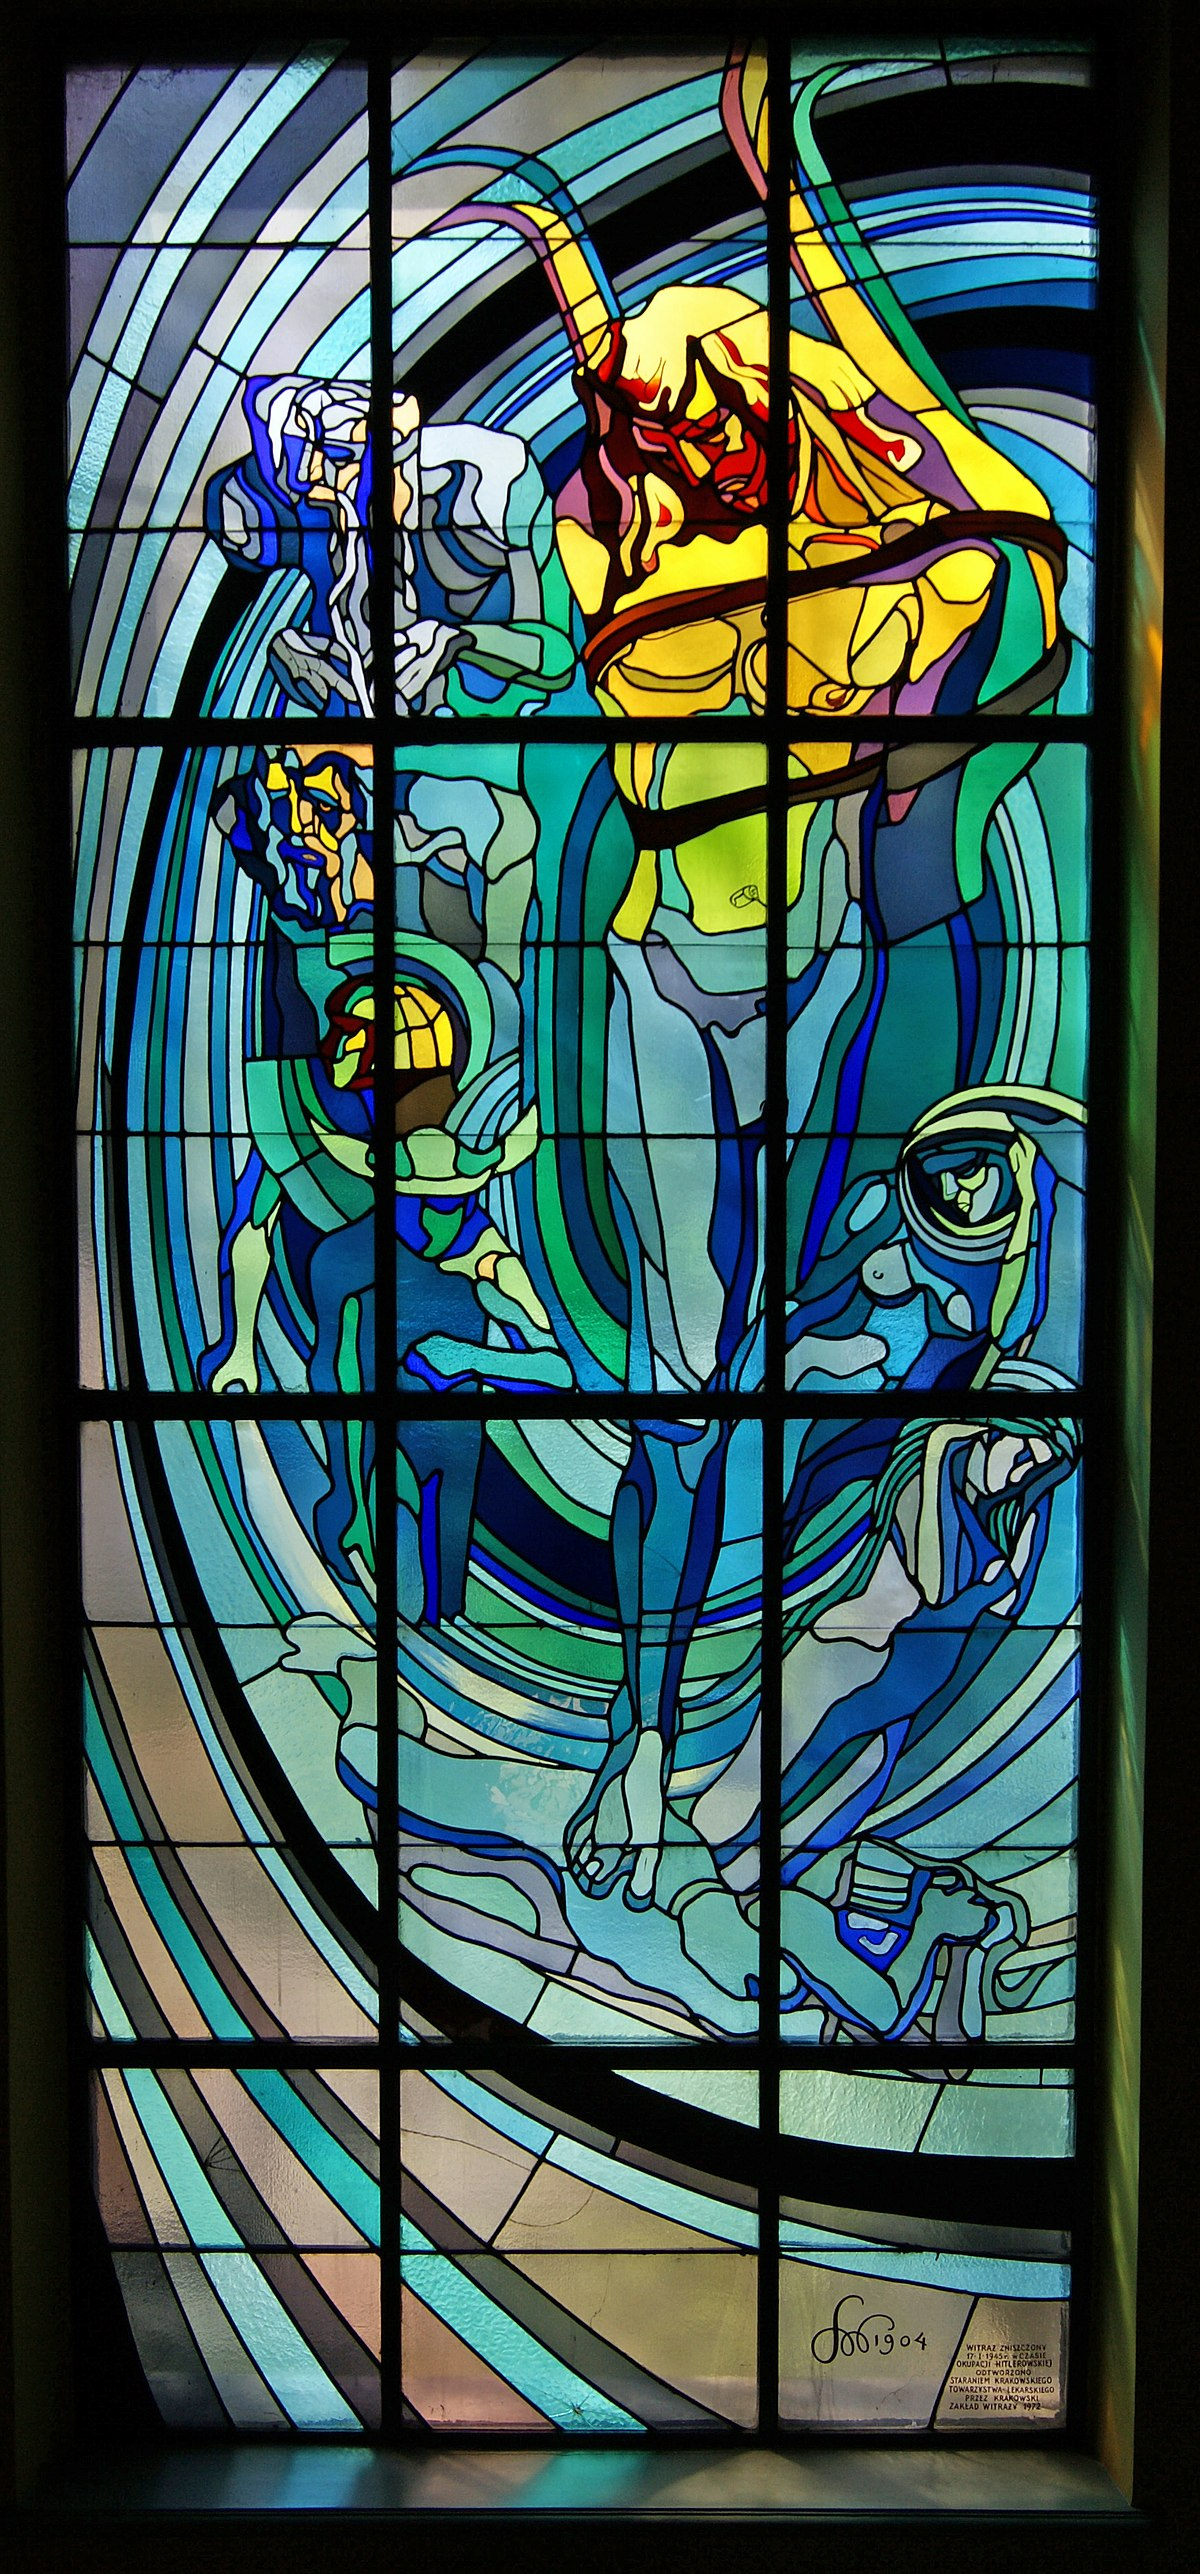 Krakow Medical Society house, Apollo-stained glass window design by Stanisław Wyspiański, 4 Radziwillowska street, Krakow, Poland.jpg